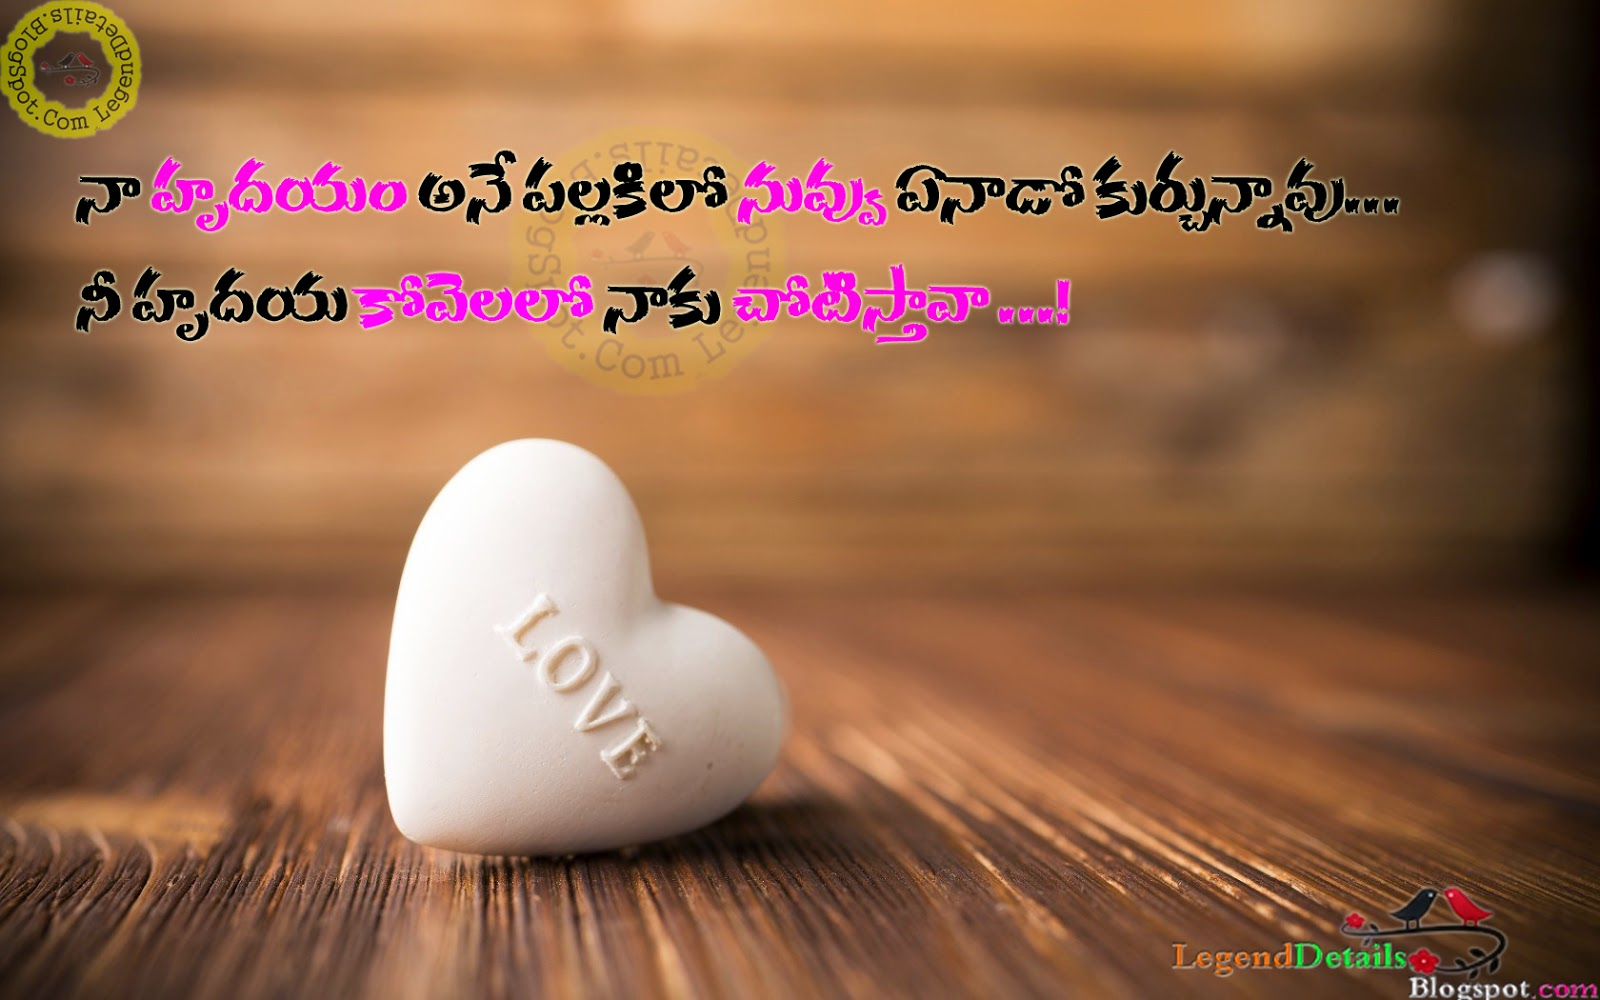 Telugu Love Quotes Delectable Telugu Love Sms With Hd Images  Heart Touching Telugu Love Sms